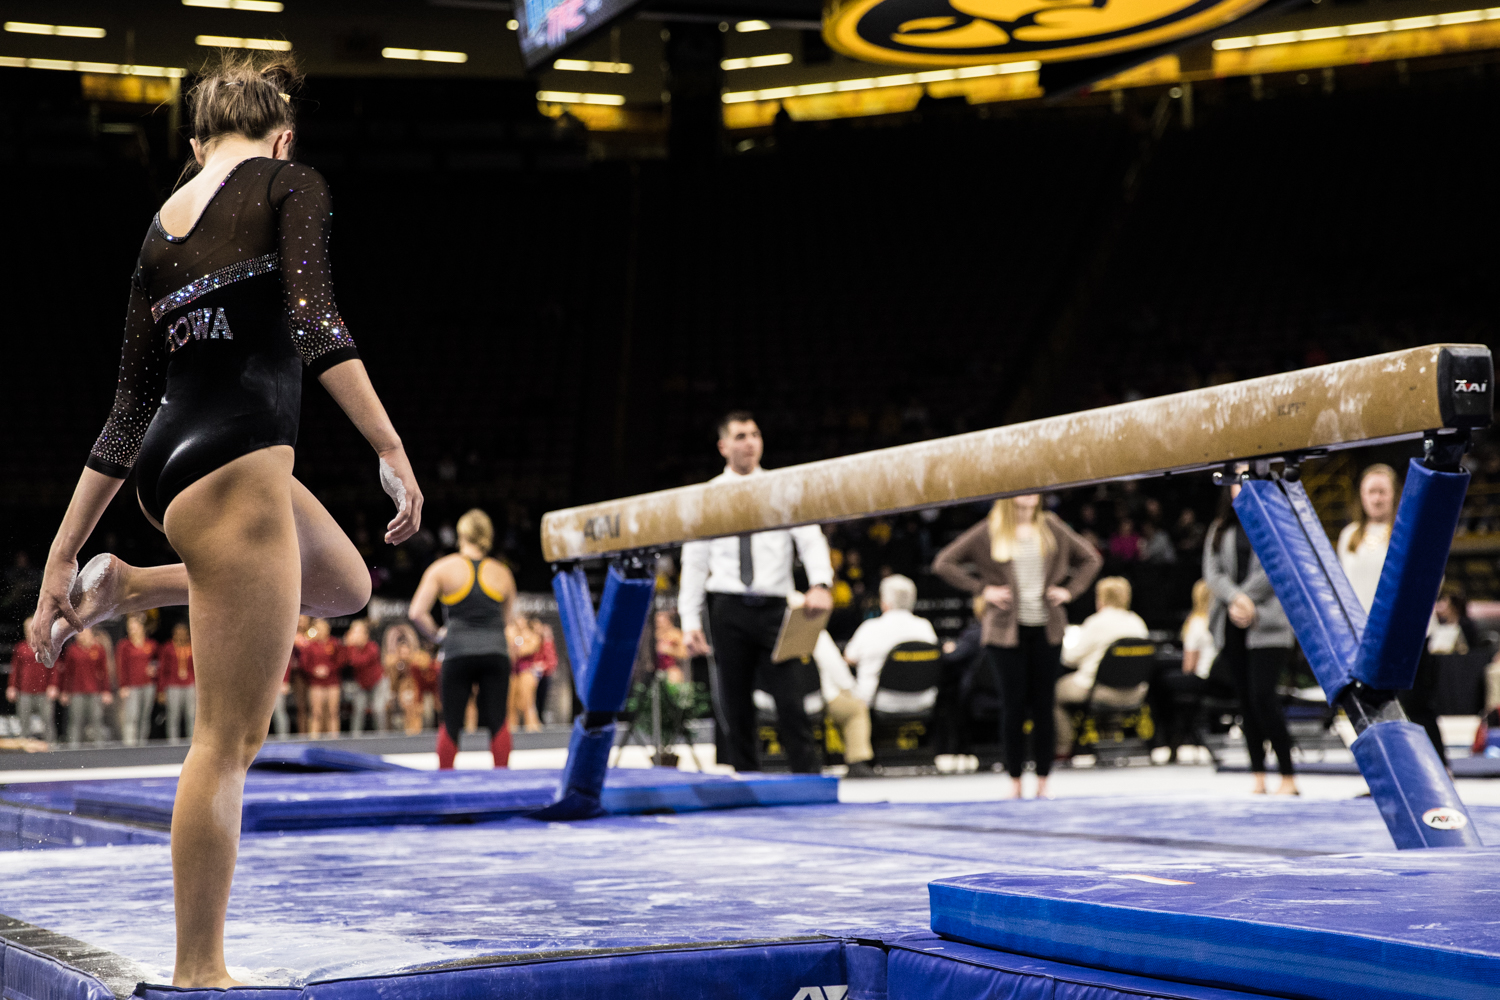 Iowa%27s+Bridget+Killian+prepares+to+compete+on+beam+during+a+women%27s+gymnastics+meet+between+Iowa+and+Iowa+State+at+Carver-Hawkeye+Arena+on+Friday%2C+March+1%2C+2019.+The+Hawkeyes%2C+celebrating+senior+night%2C+fell+to+the+Cyclones%2C+196.275-196.250.